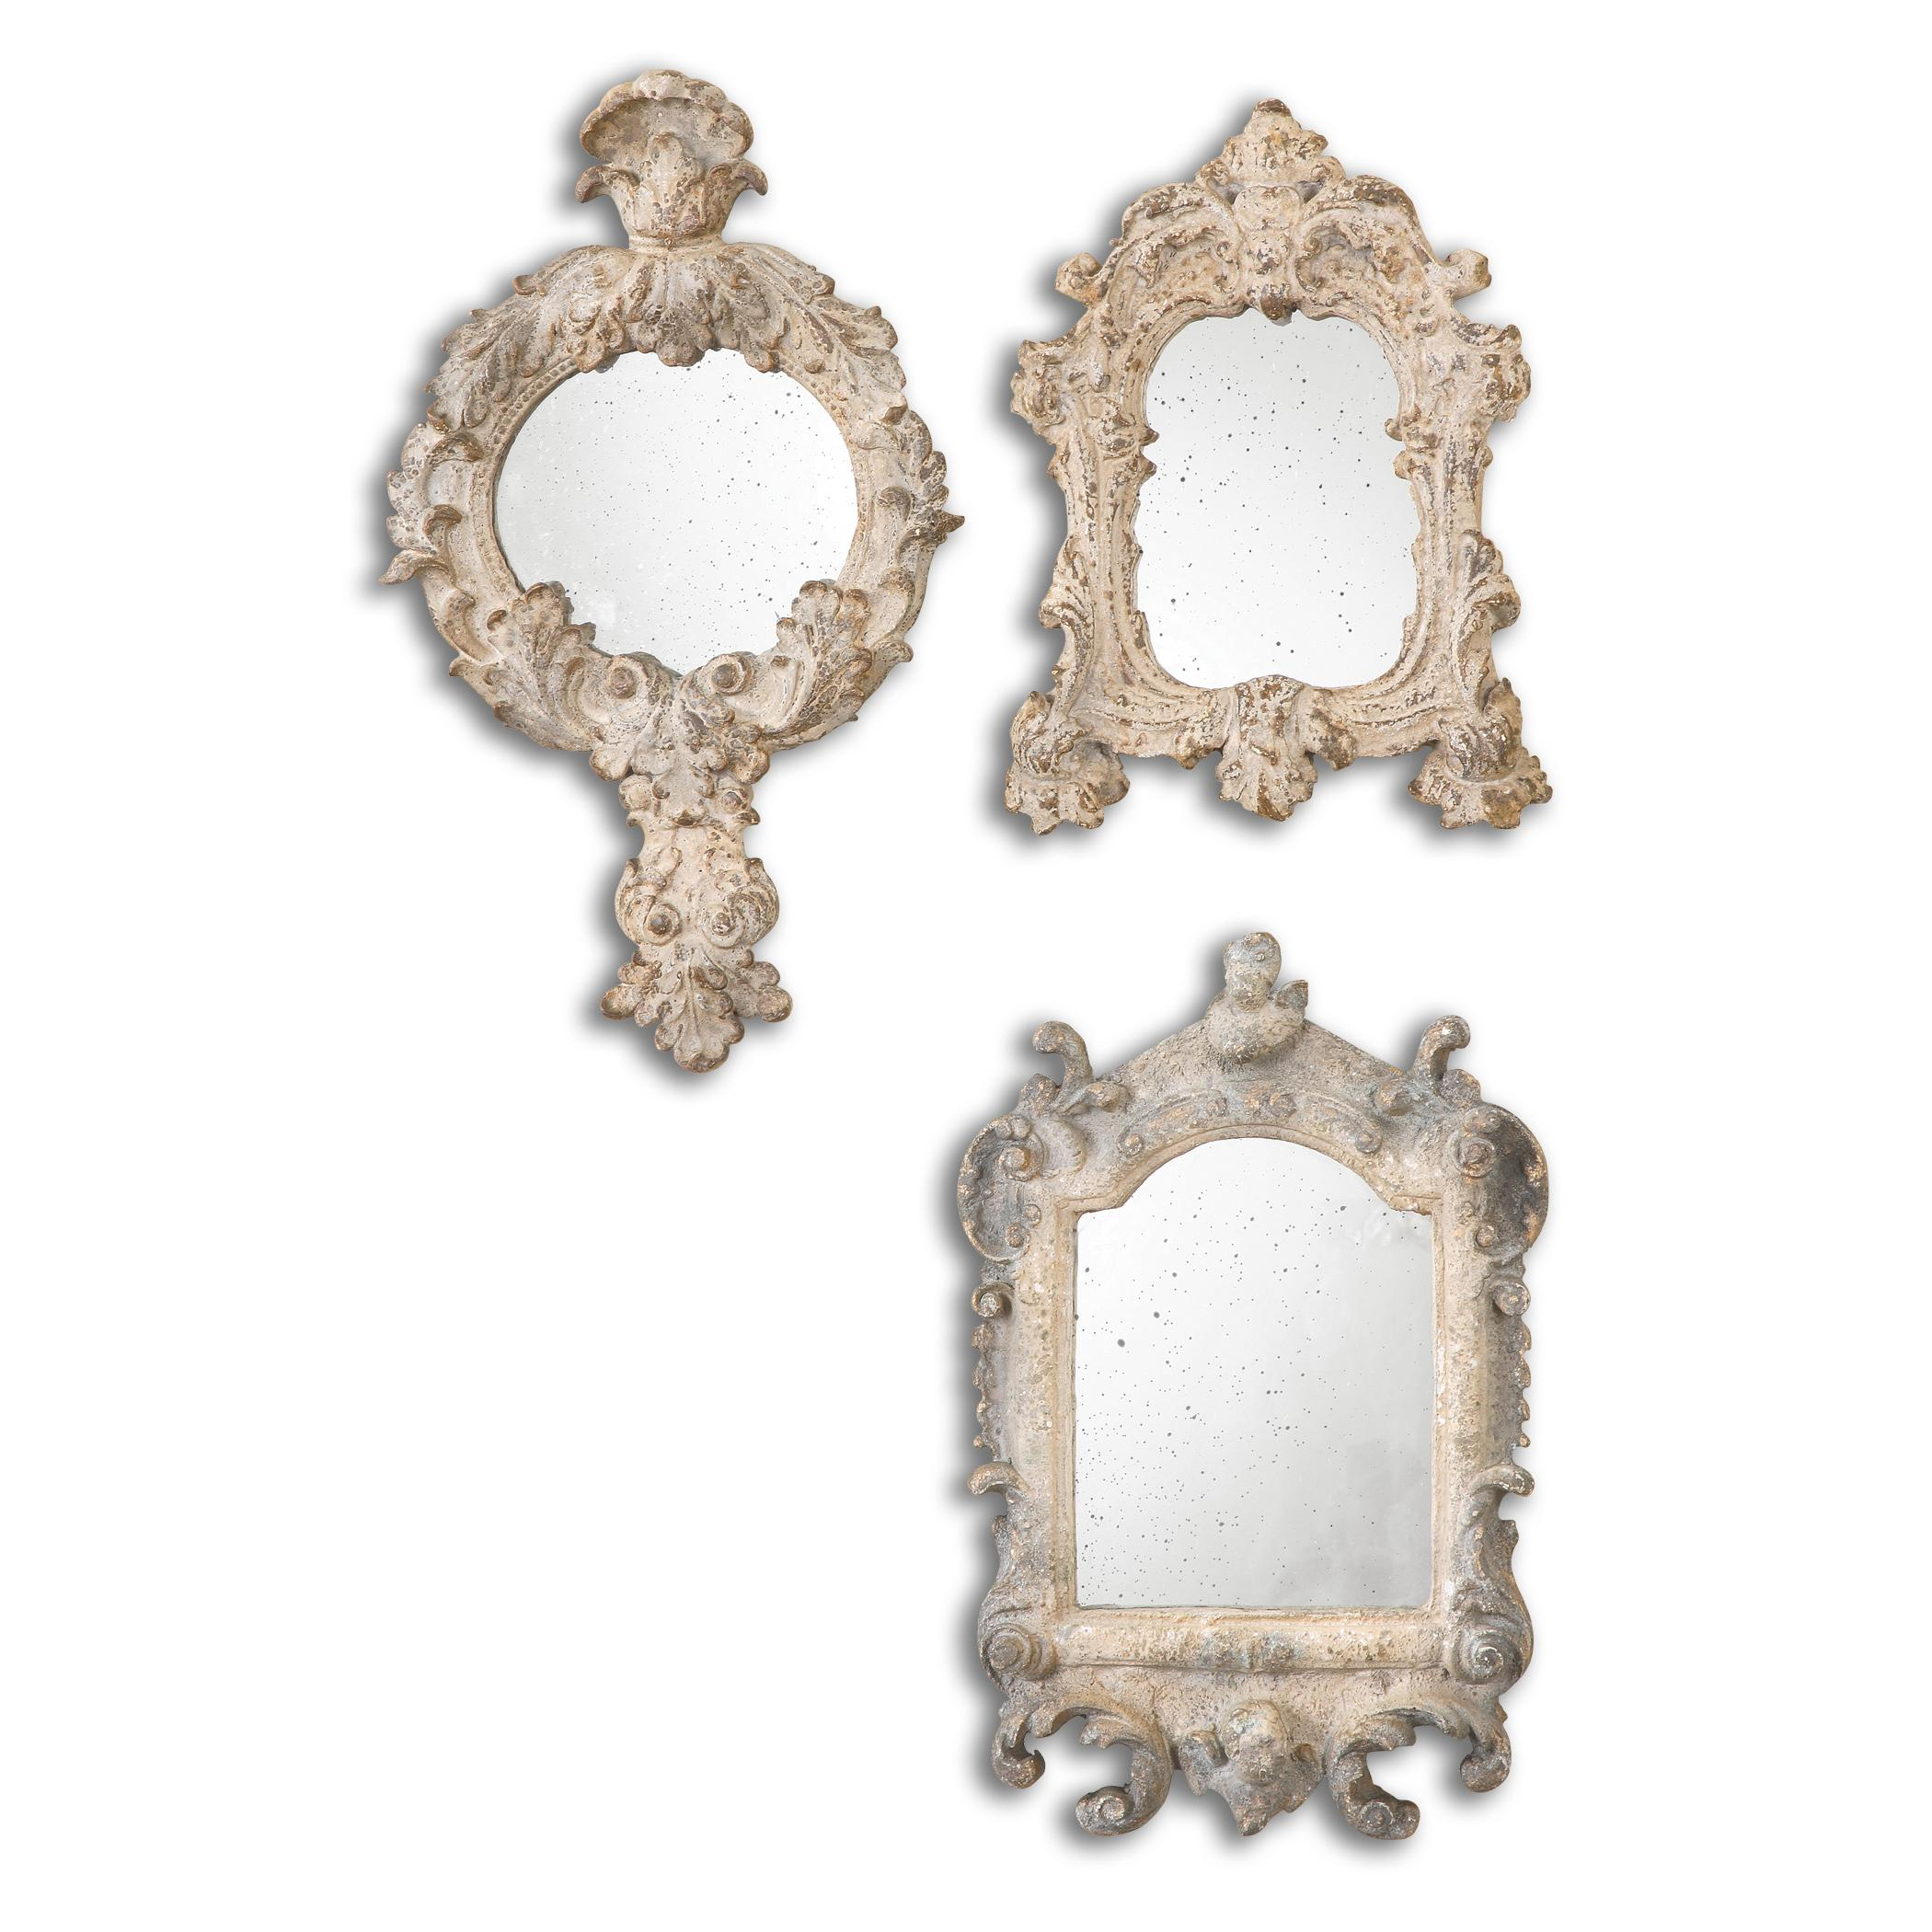 Uttermost Mirrors Rustic Artifacts Reflection Mirrors Set of 3 - Item Number: 13882